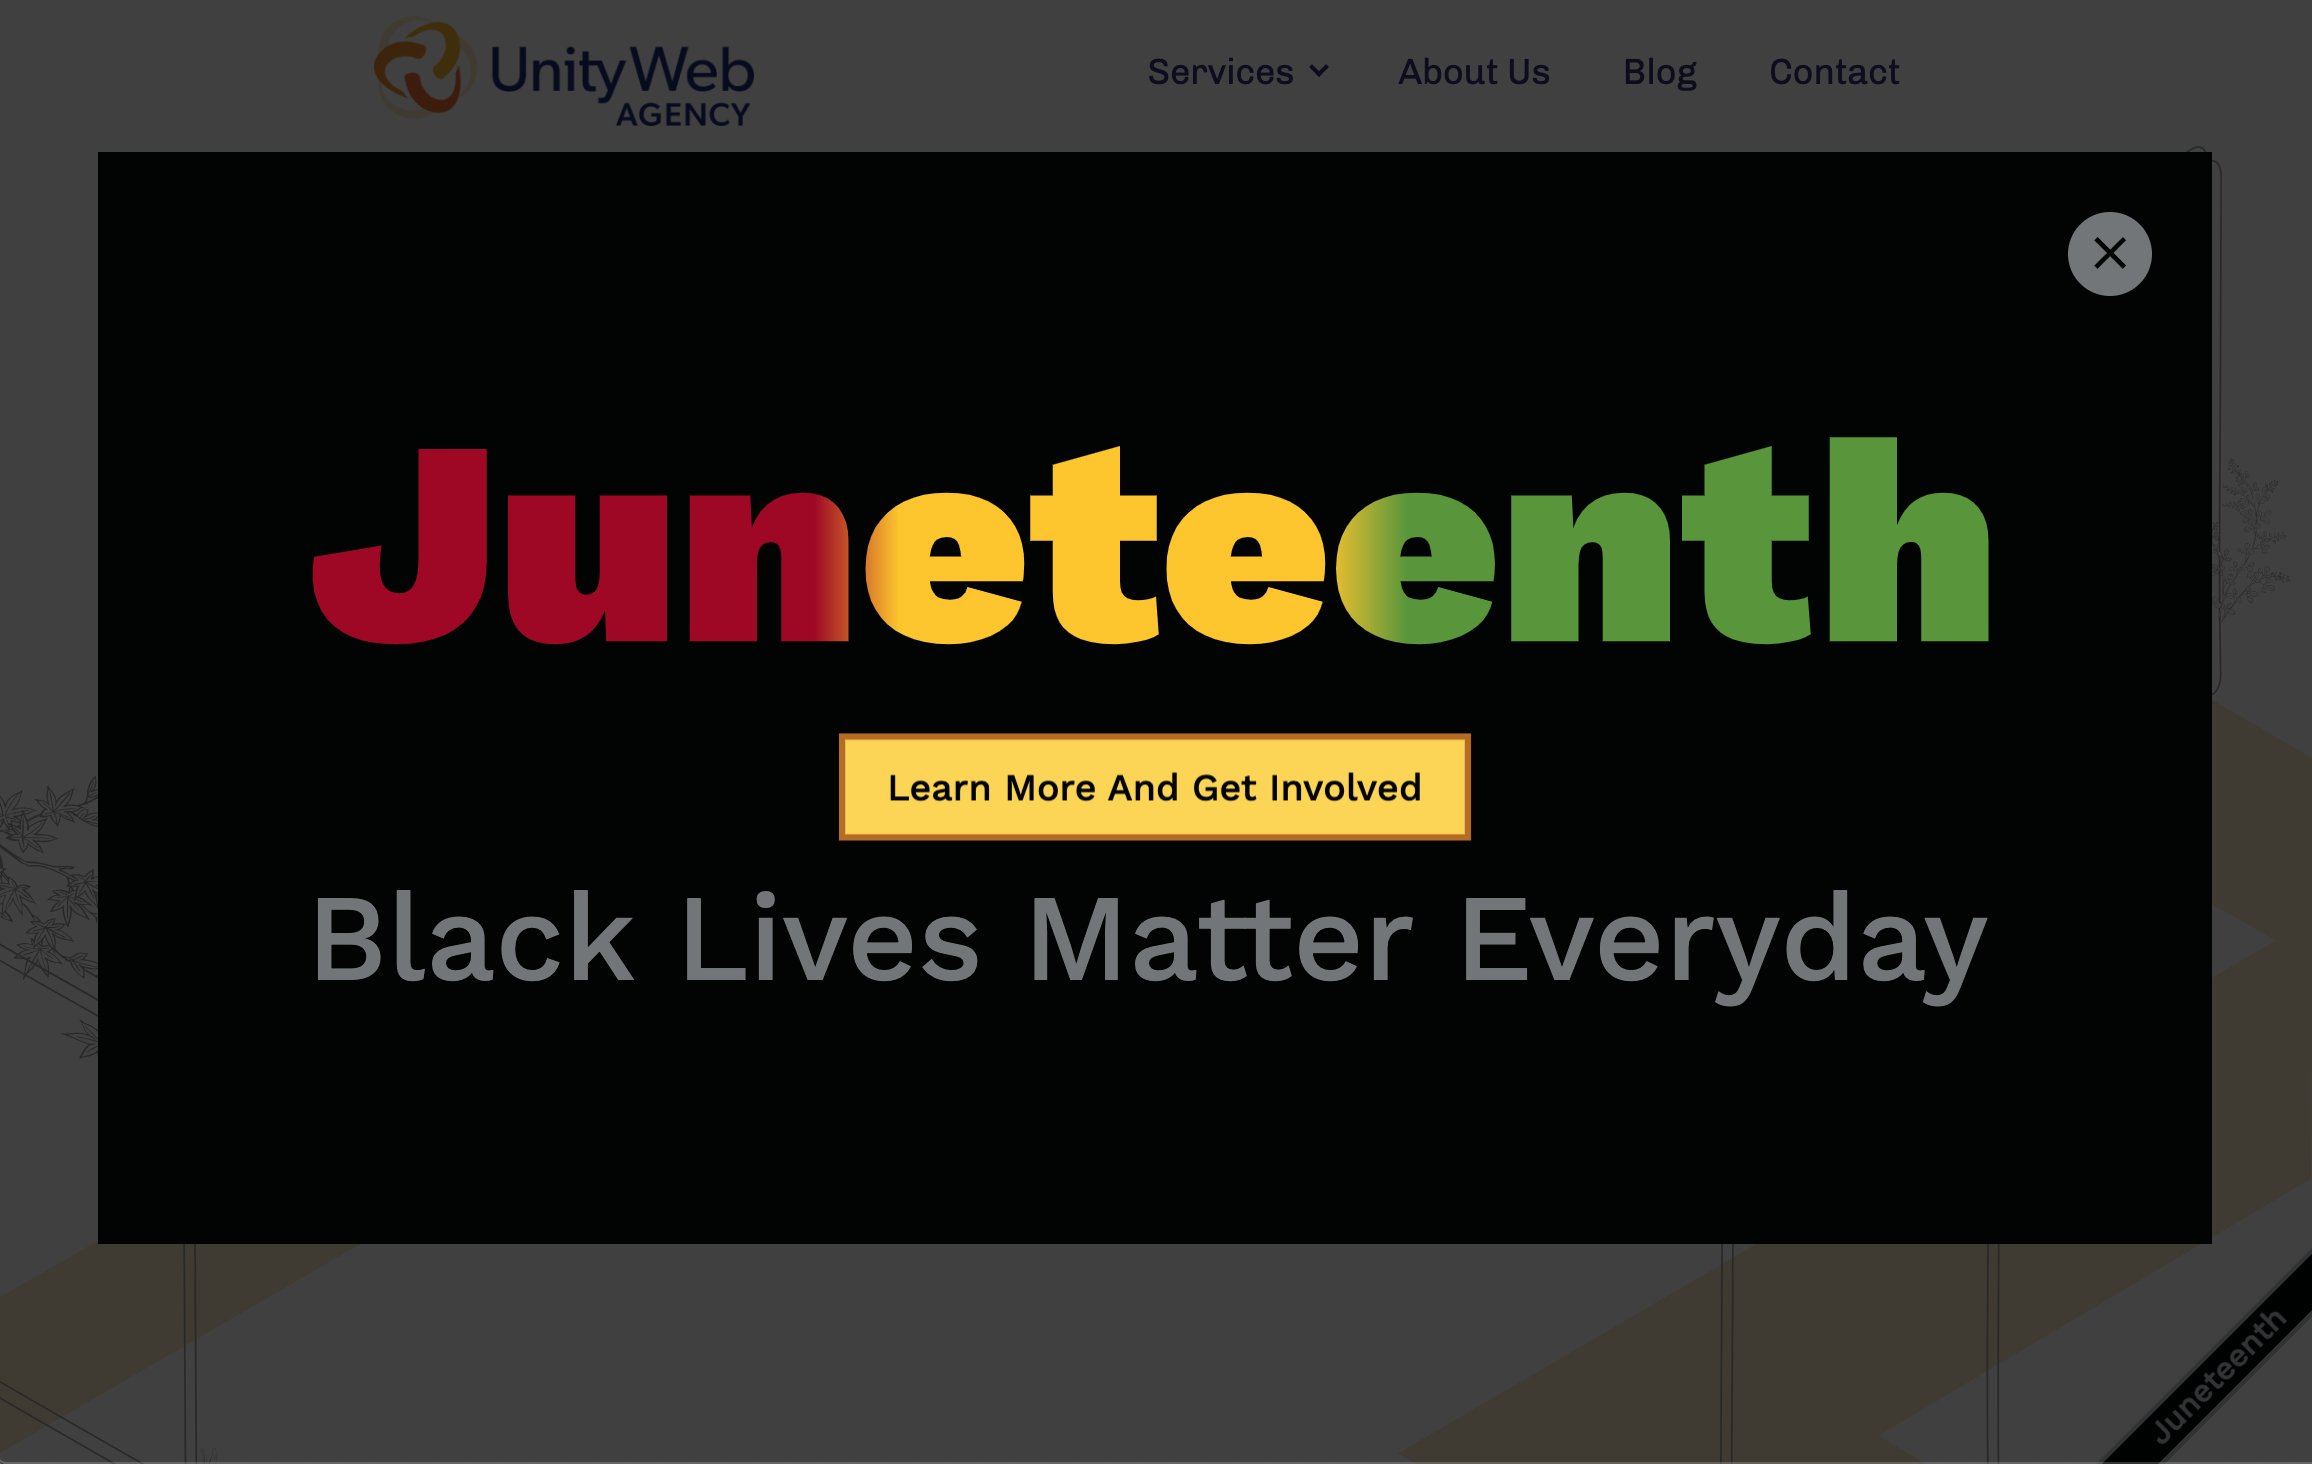 Screenshot of a modal banner on a website. Modal says Juneteenth in red, yellow, and green letters on a black background. Button says Learn More And Get Involved. Gray text below says Black Lives Matter Everyday.